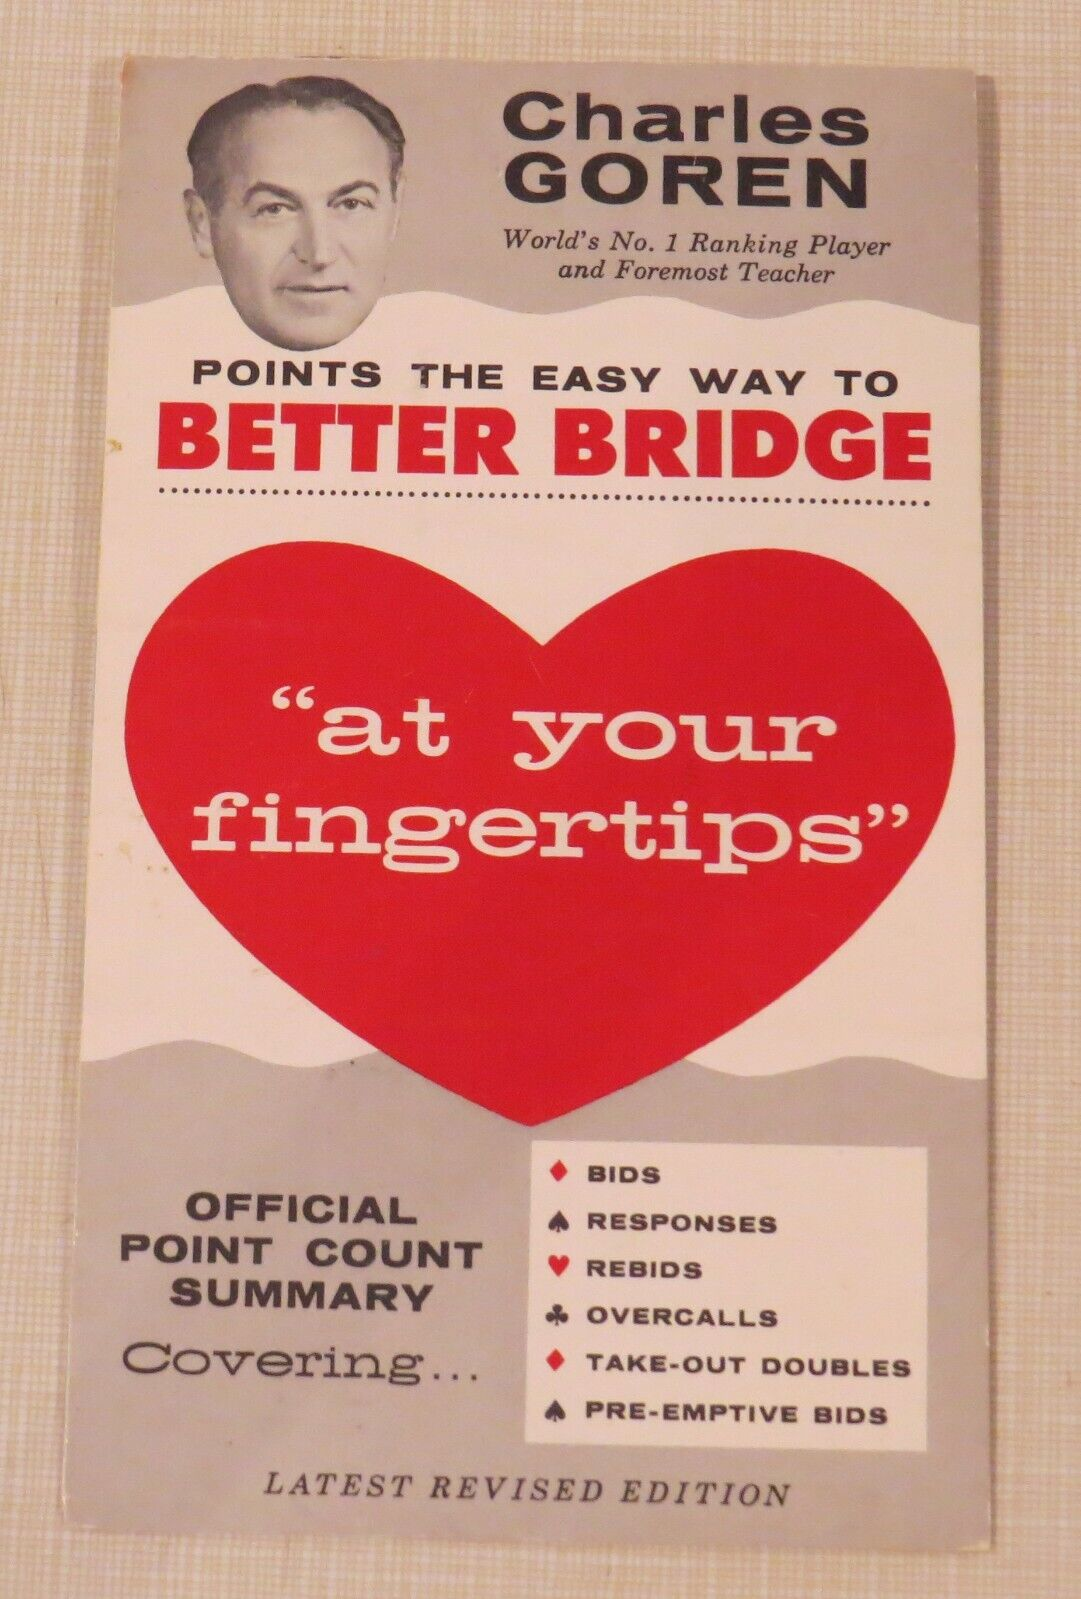 Charles Goren  At Your Fingertips  Points Points Points the Easy Way to Better Bridge, summary 5ce97c